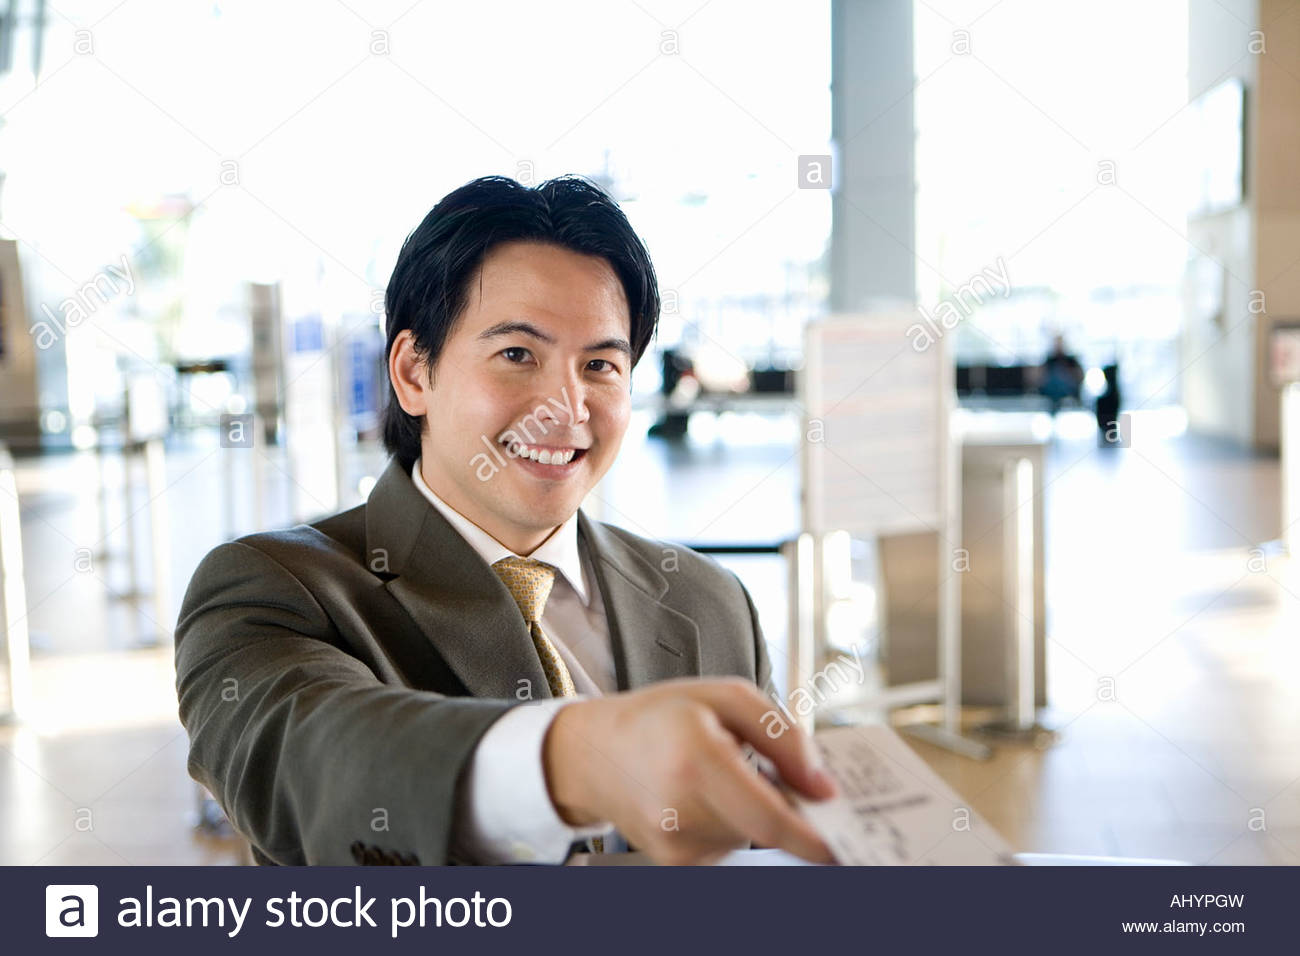 Businessman checking in at airport, receiving boarding pass from check-in attendant, smiling, portrait, behind check - Stock Image